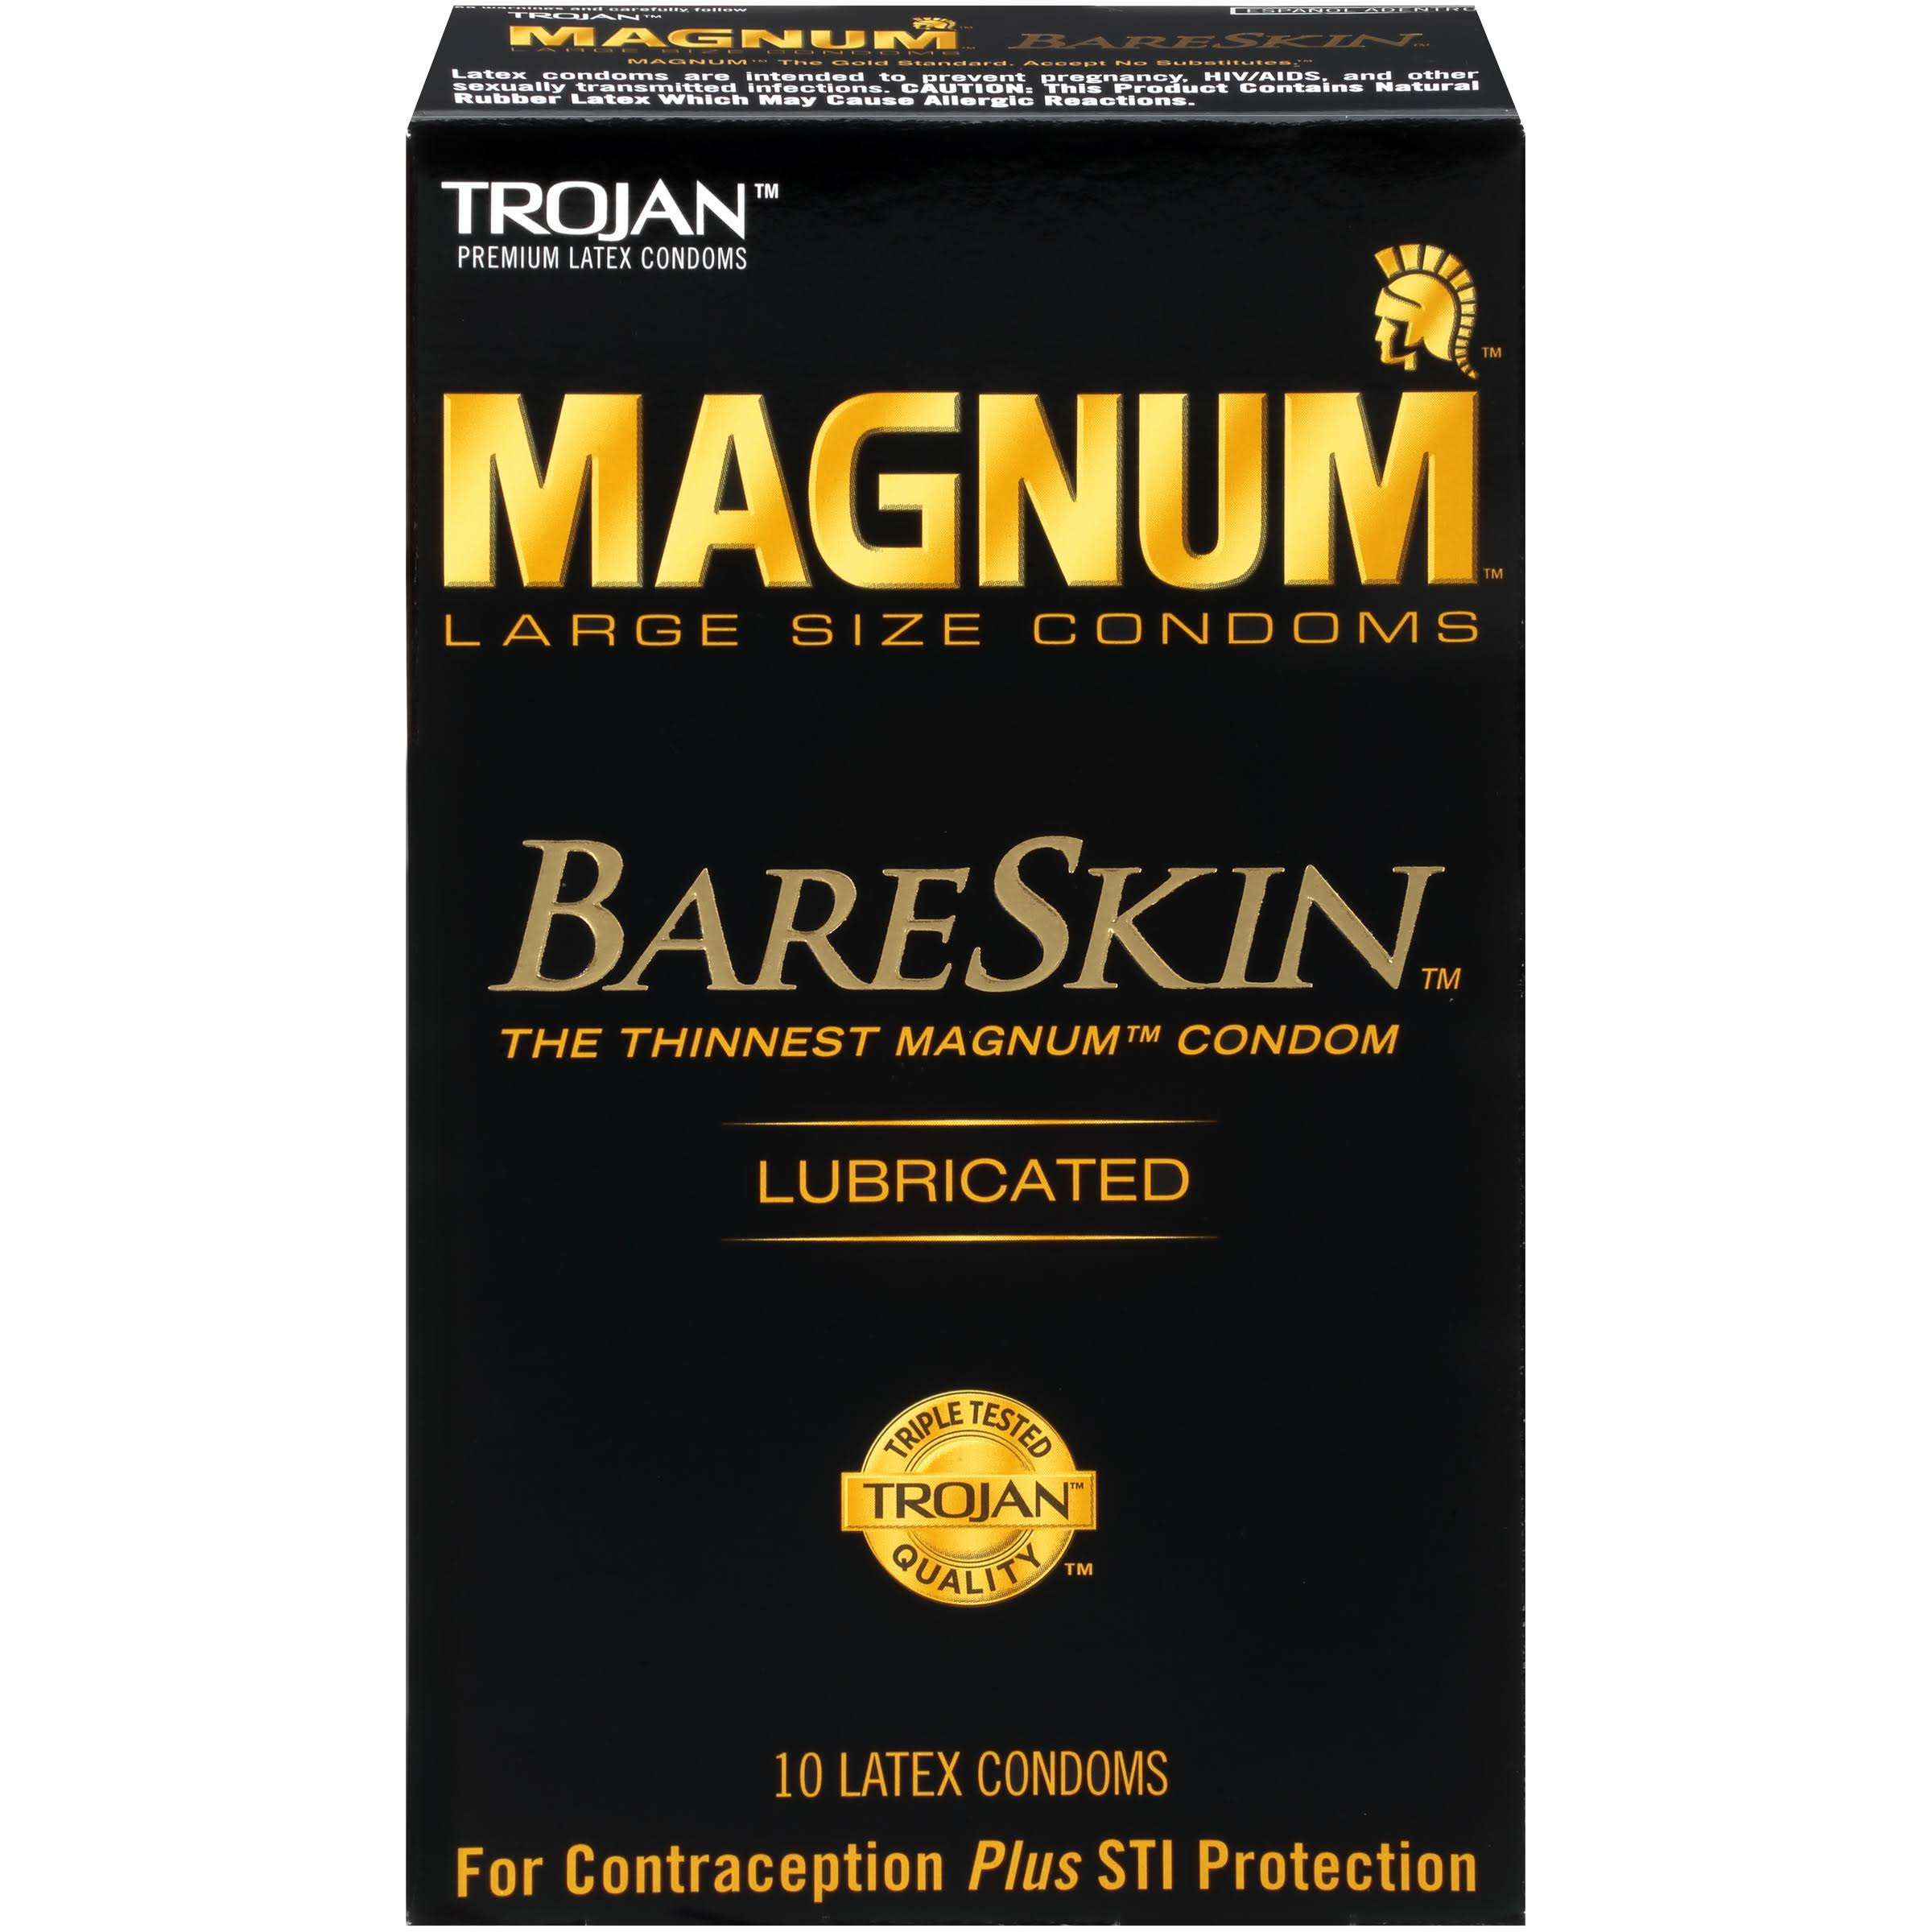 Trojan Magnum Bareskin Lubricated Condoms - 10 Count